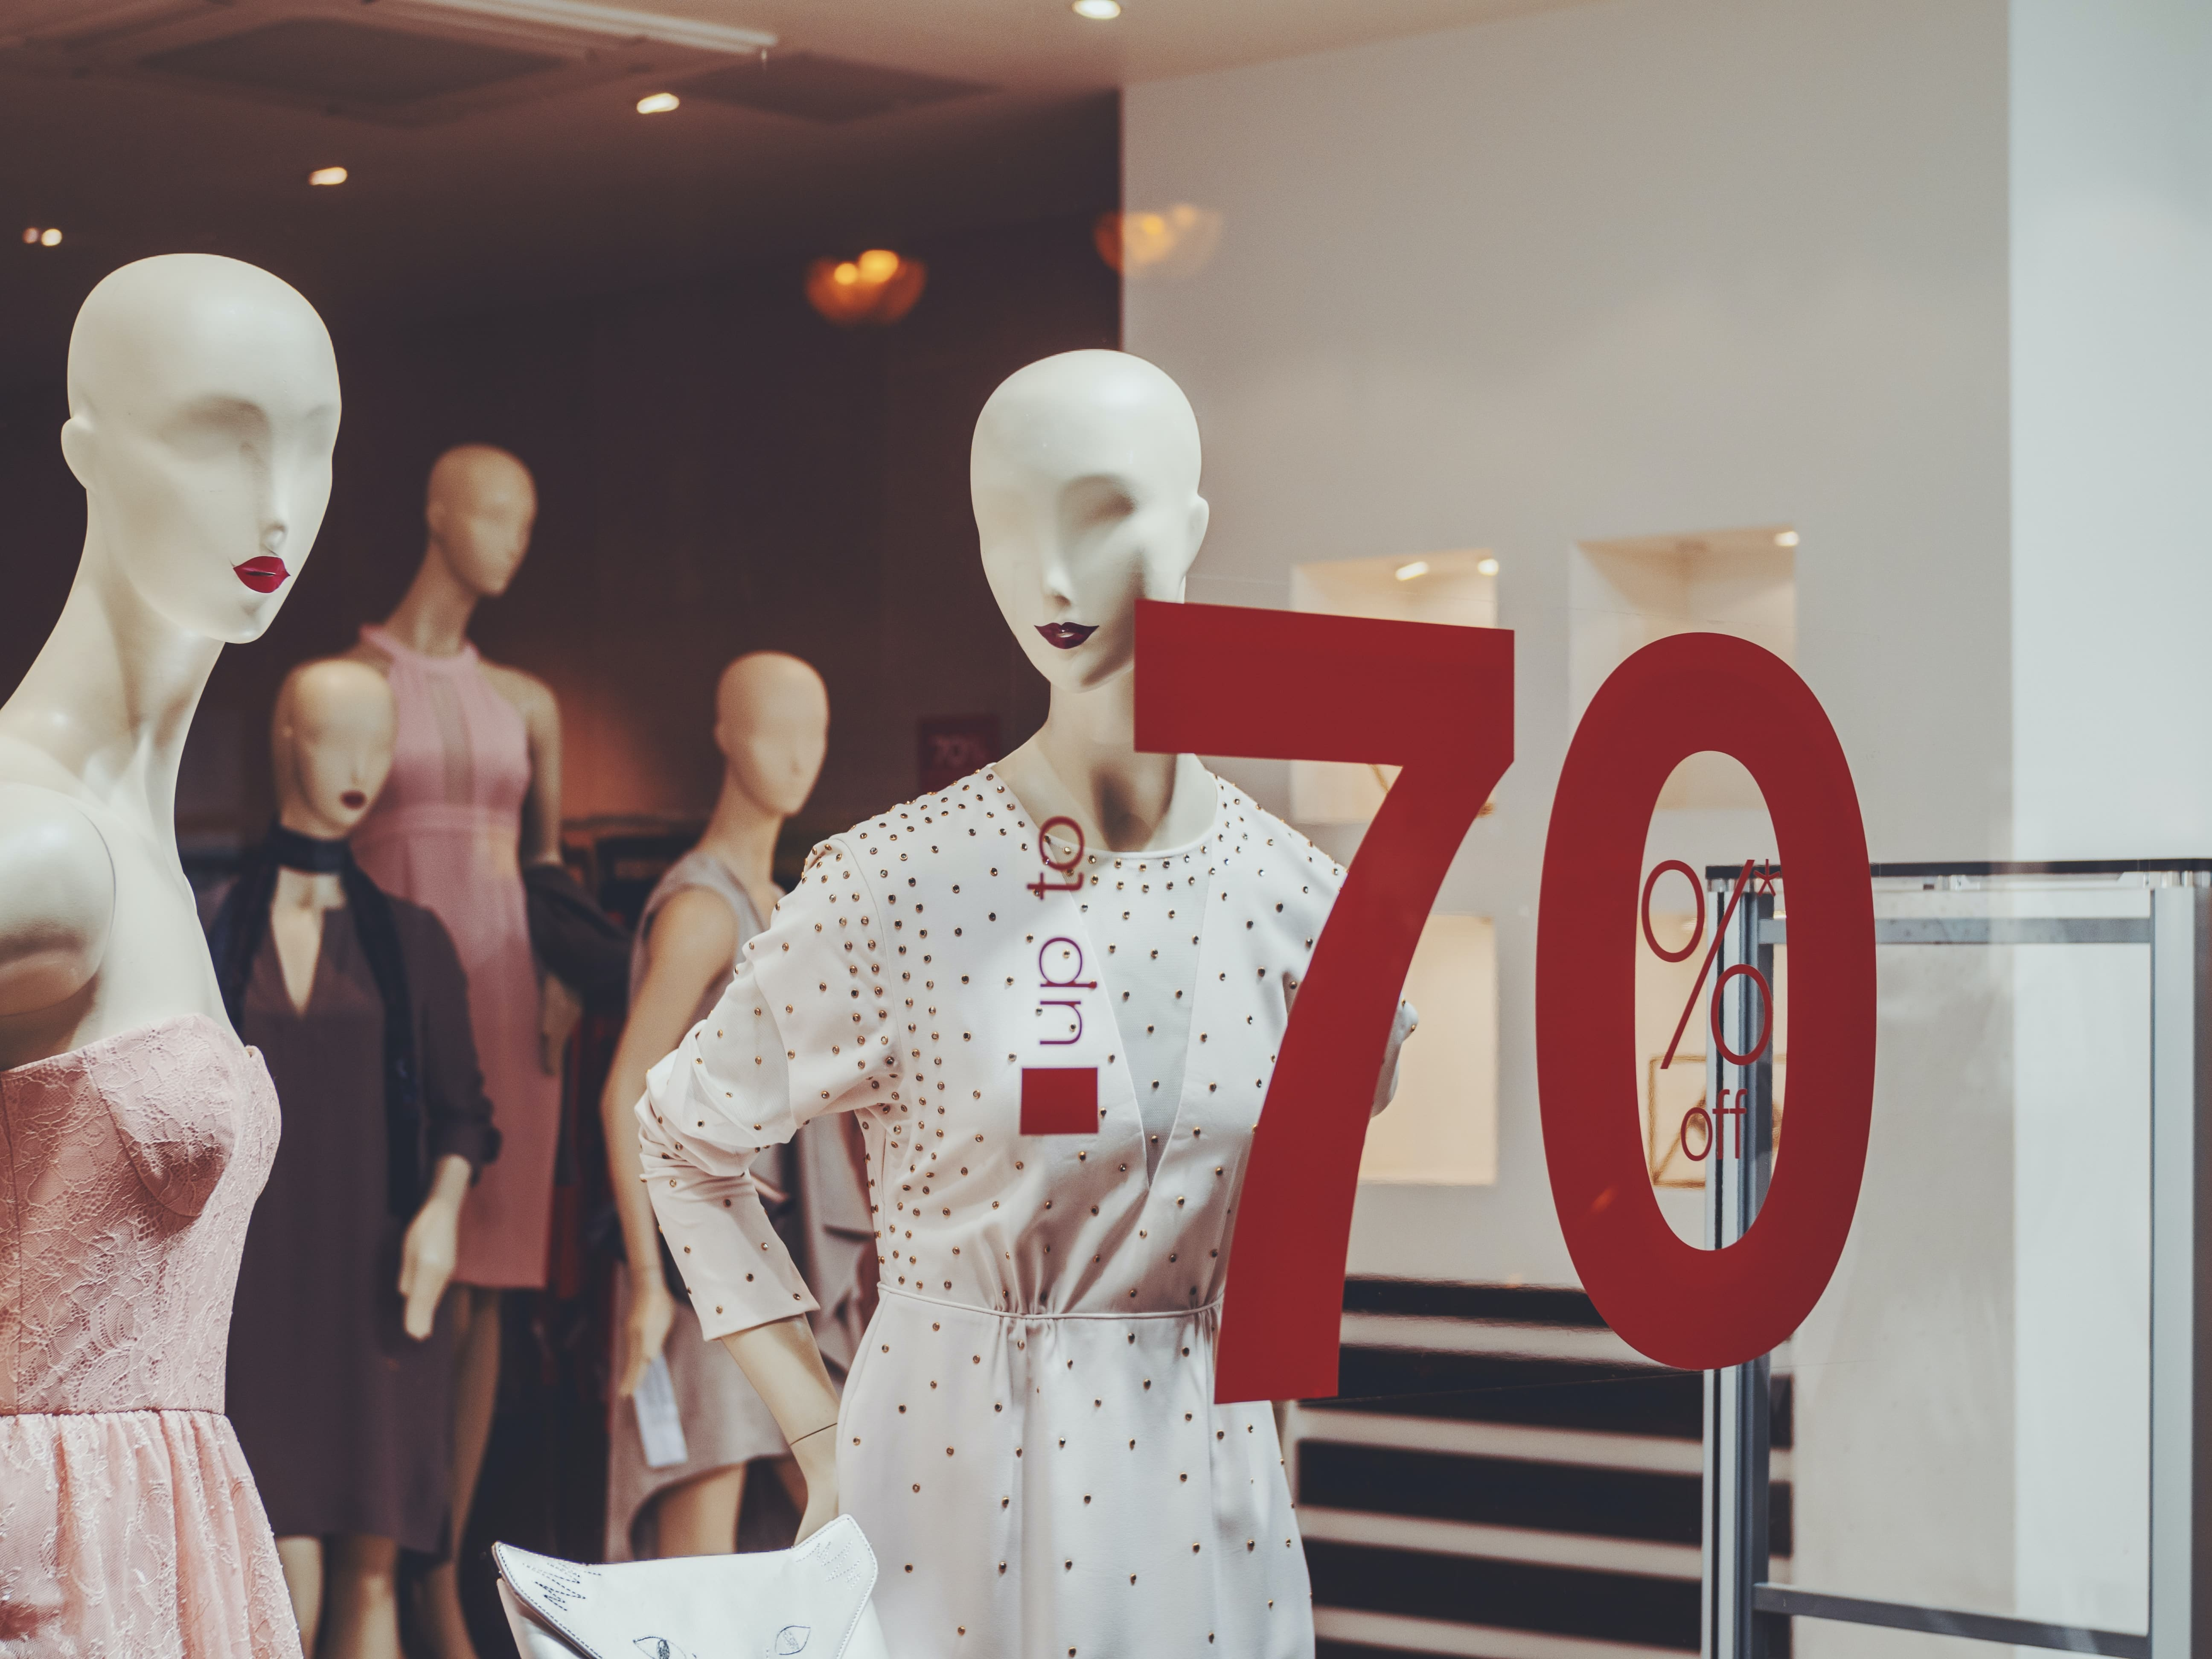 how can retailers minimize returns